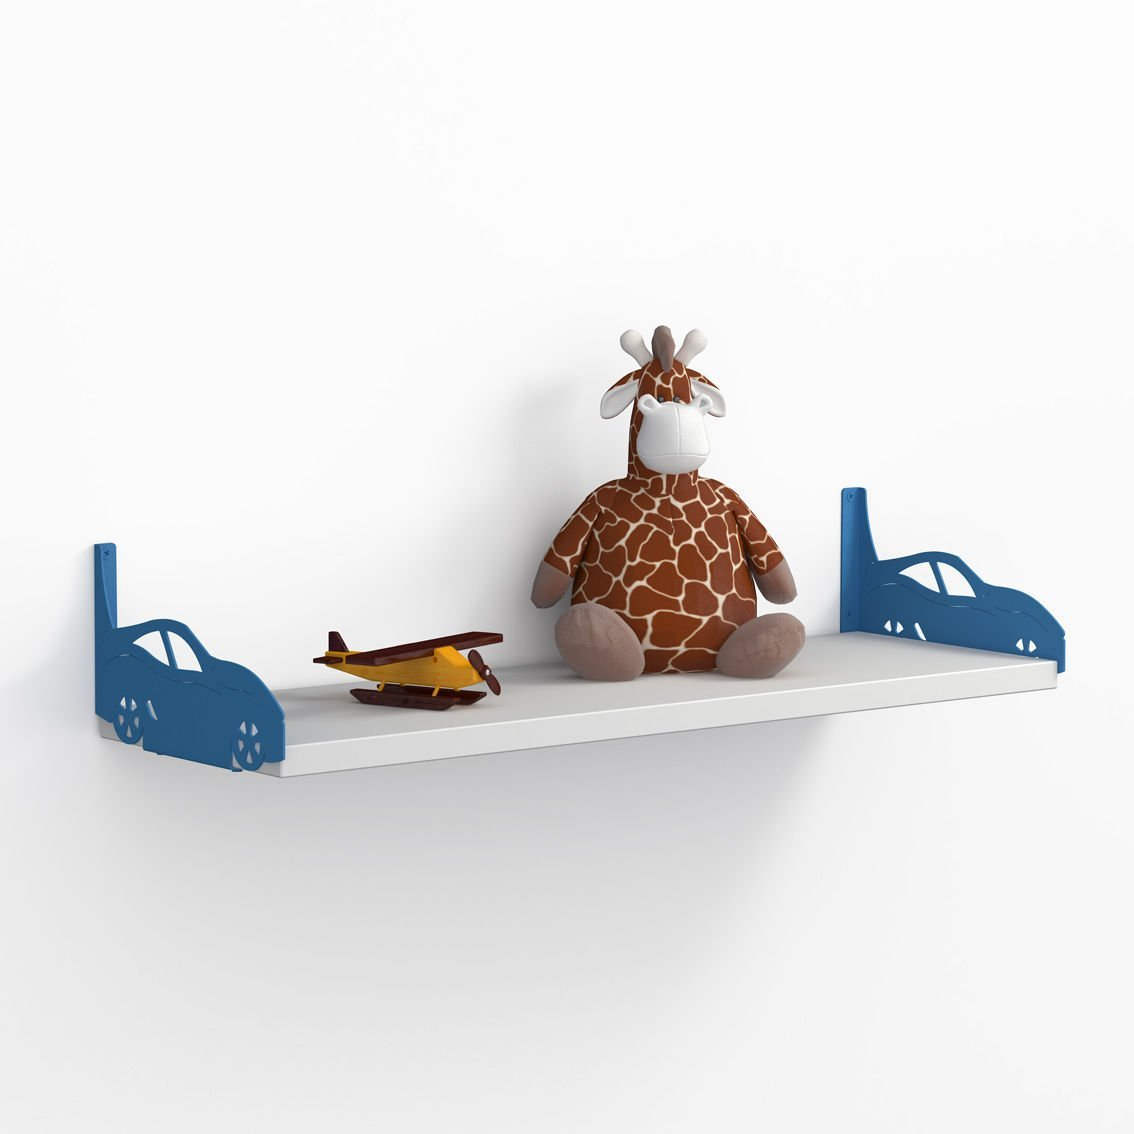 LaModaHome Blue Sport Cars Wall Shelf, 100% Melamine Coated Particle Board - Size (23.6'' x 7.9'' x 7.9''), Easy to Hang with Invisible Brackets, Wall Mounted Floating Shelves for Home & Office